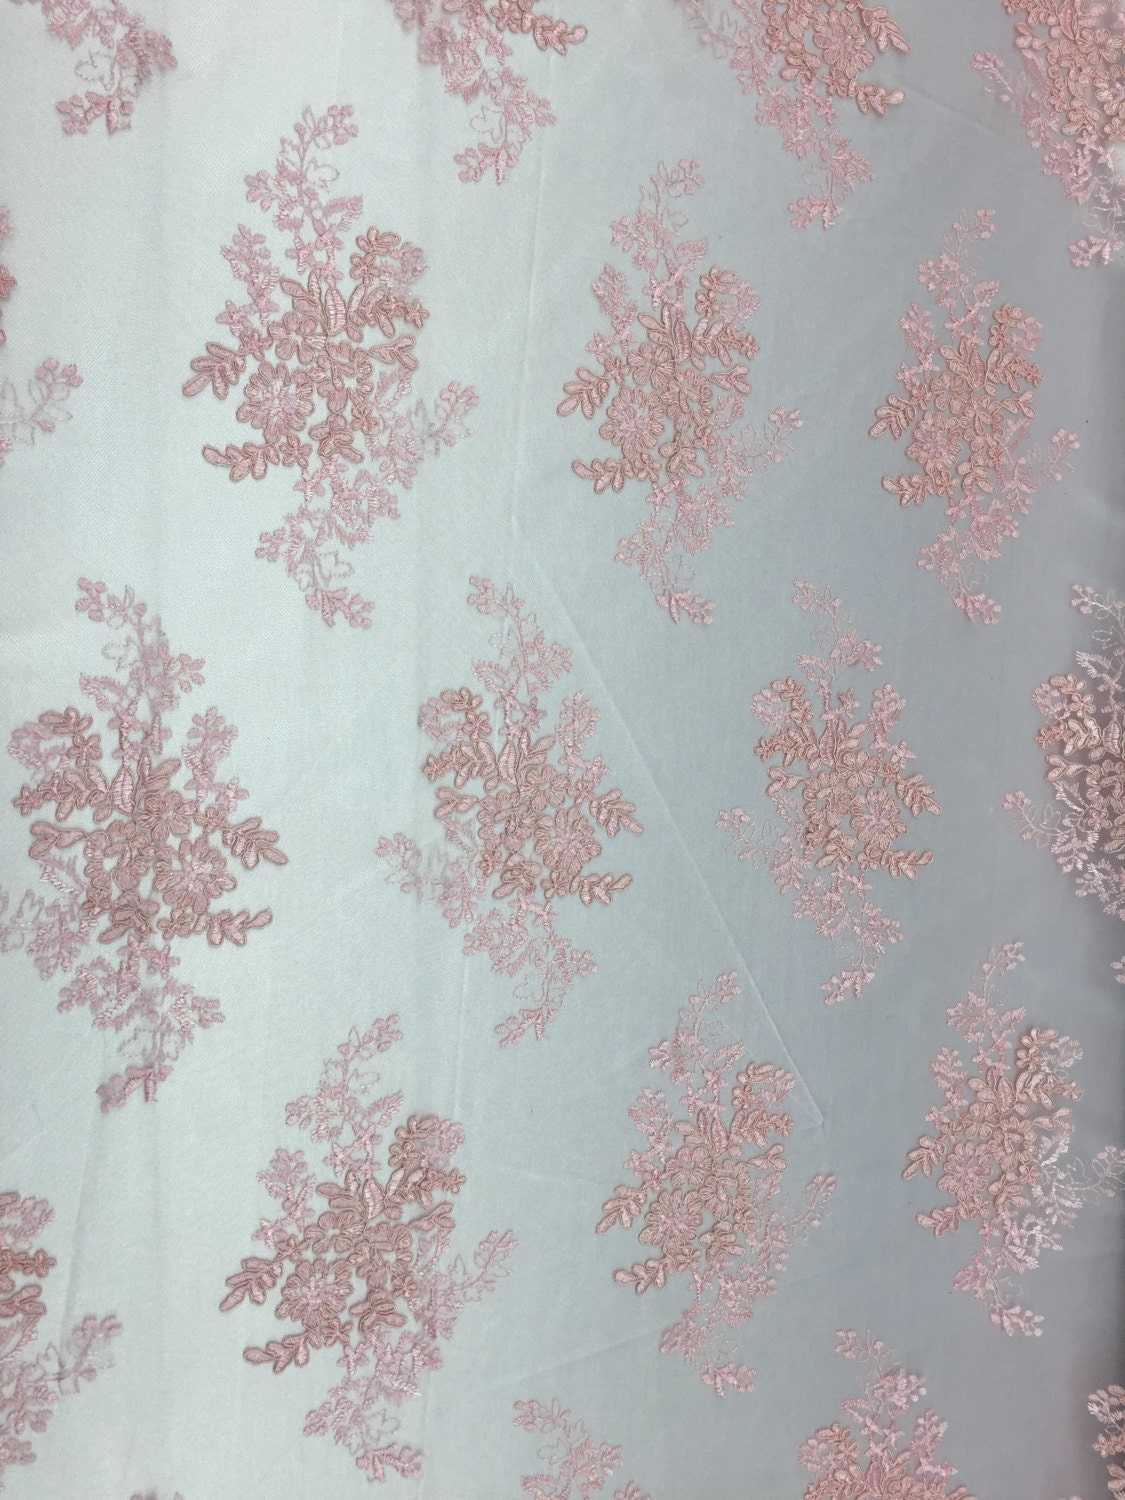 Dusty Pink Oswald Floral Wedding Gown Dress Lace Fabric - Sold By ...